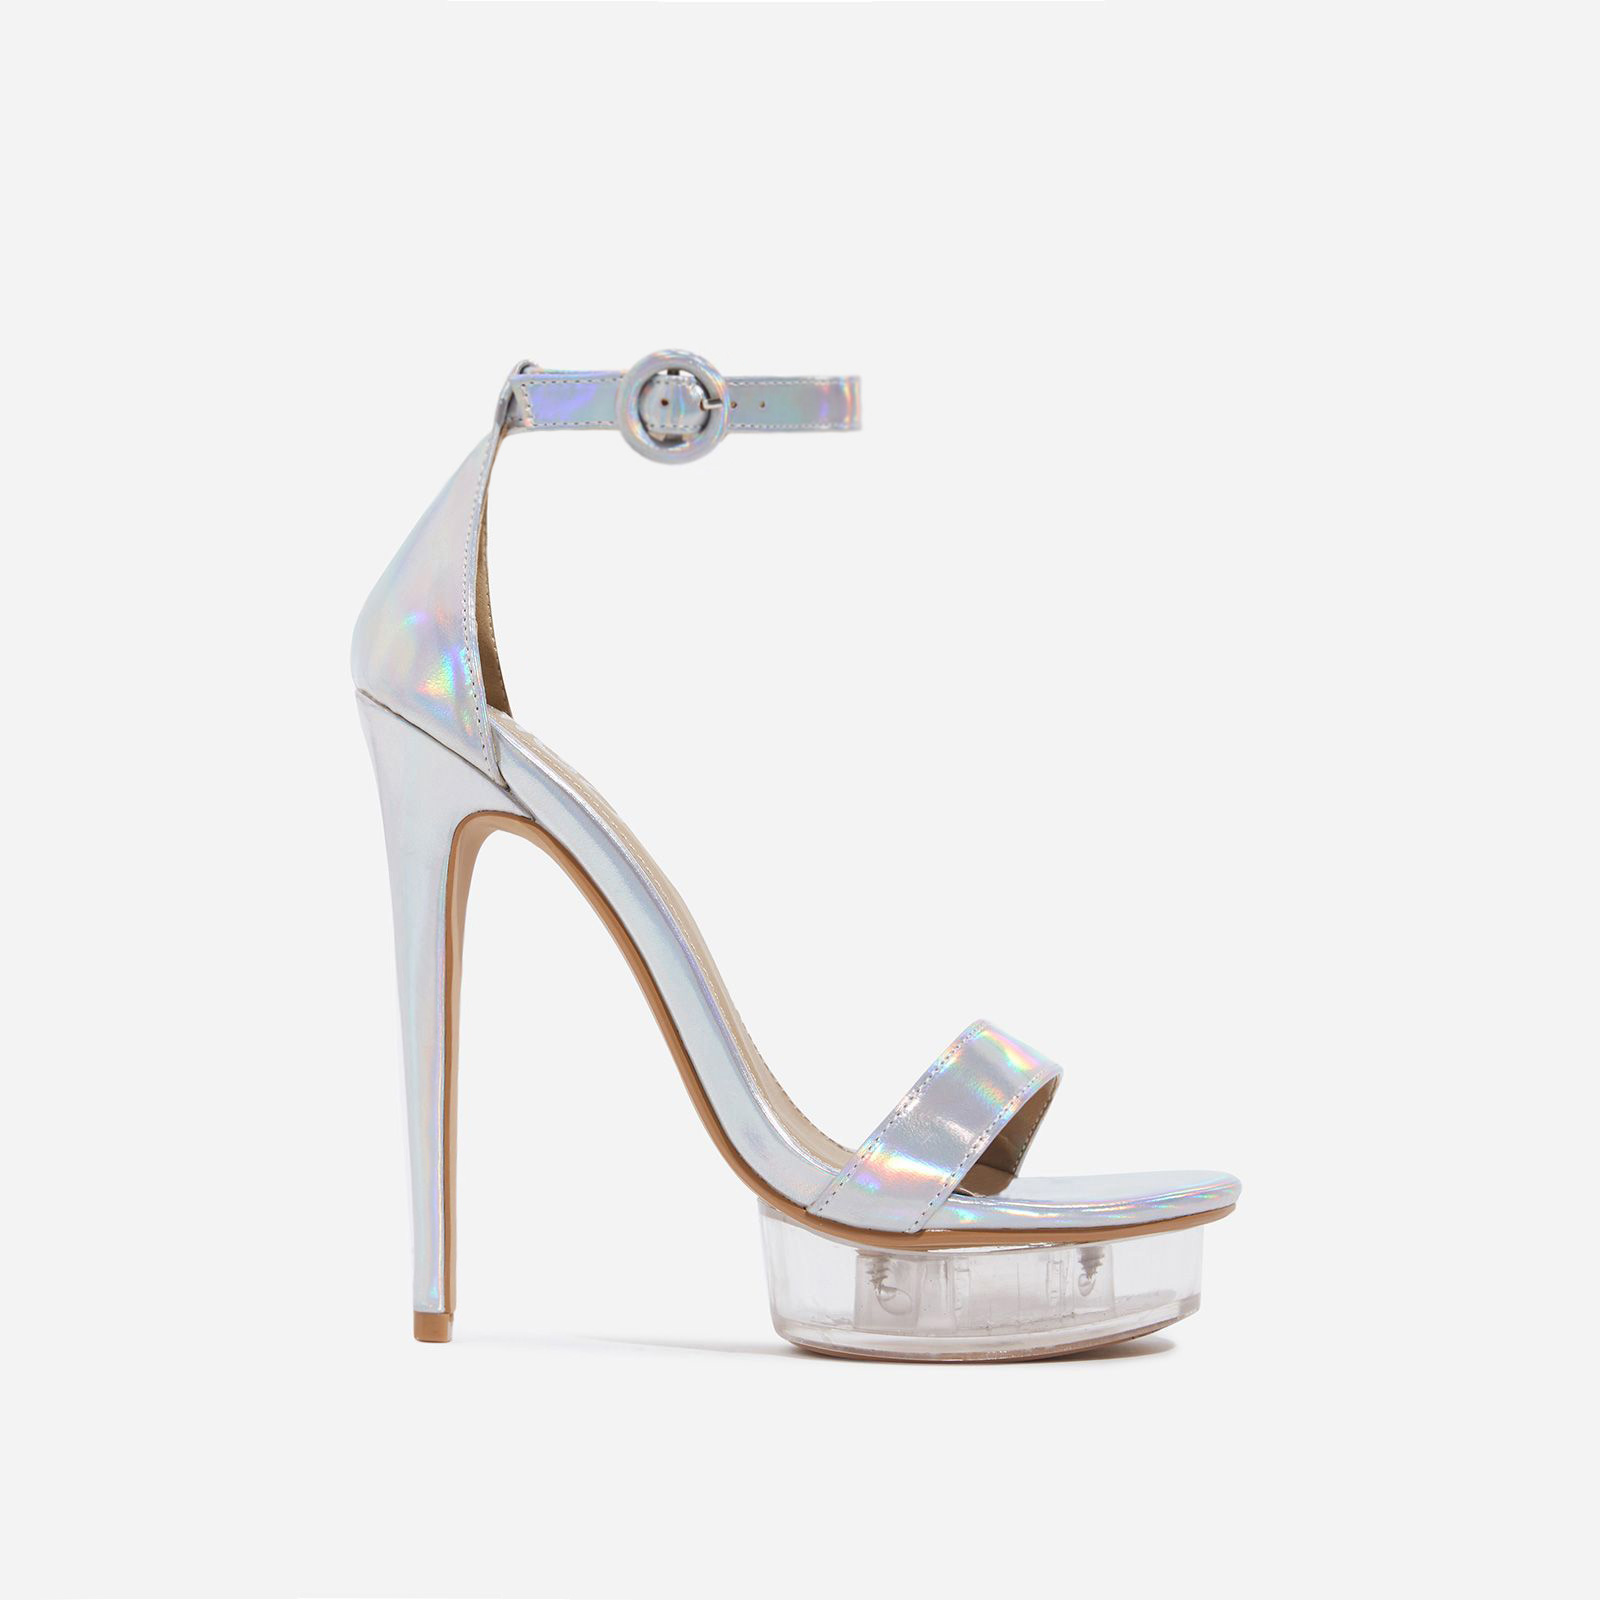 Passion Barely There Perspex Platform Heel In Silver Holographic Faux Leather